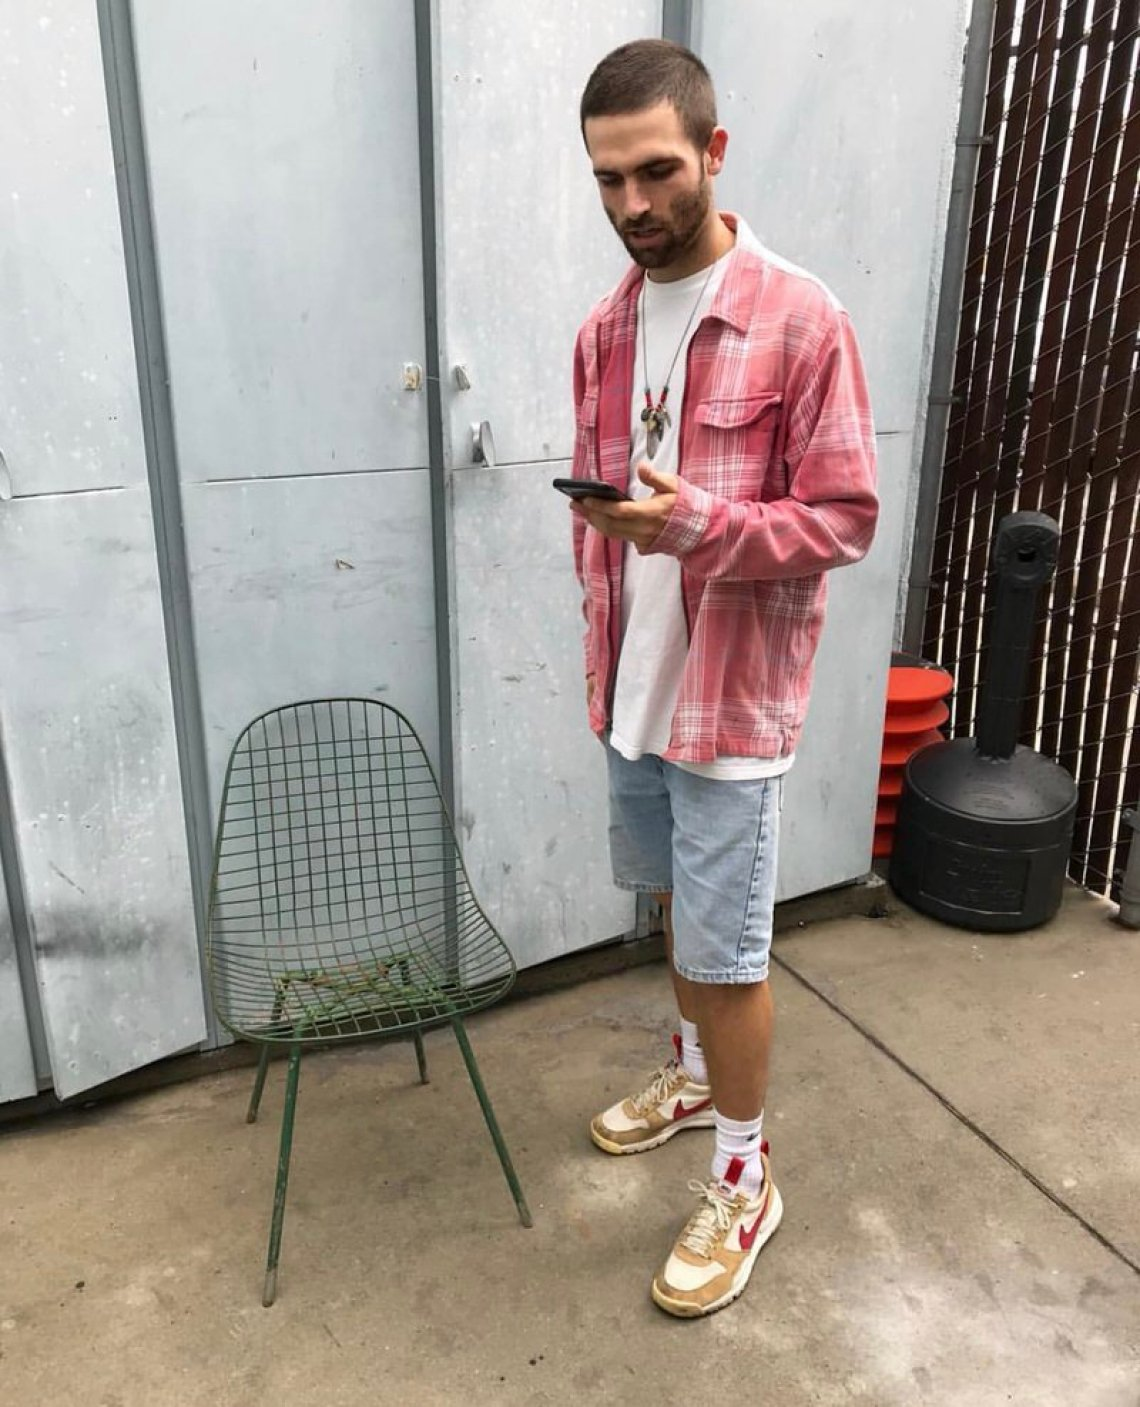 Need some style inspiration? Then go yard and follow in Sean's footsteps.